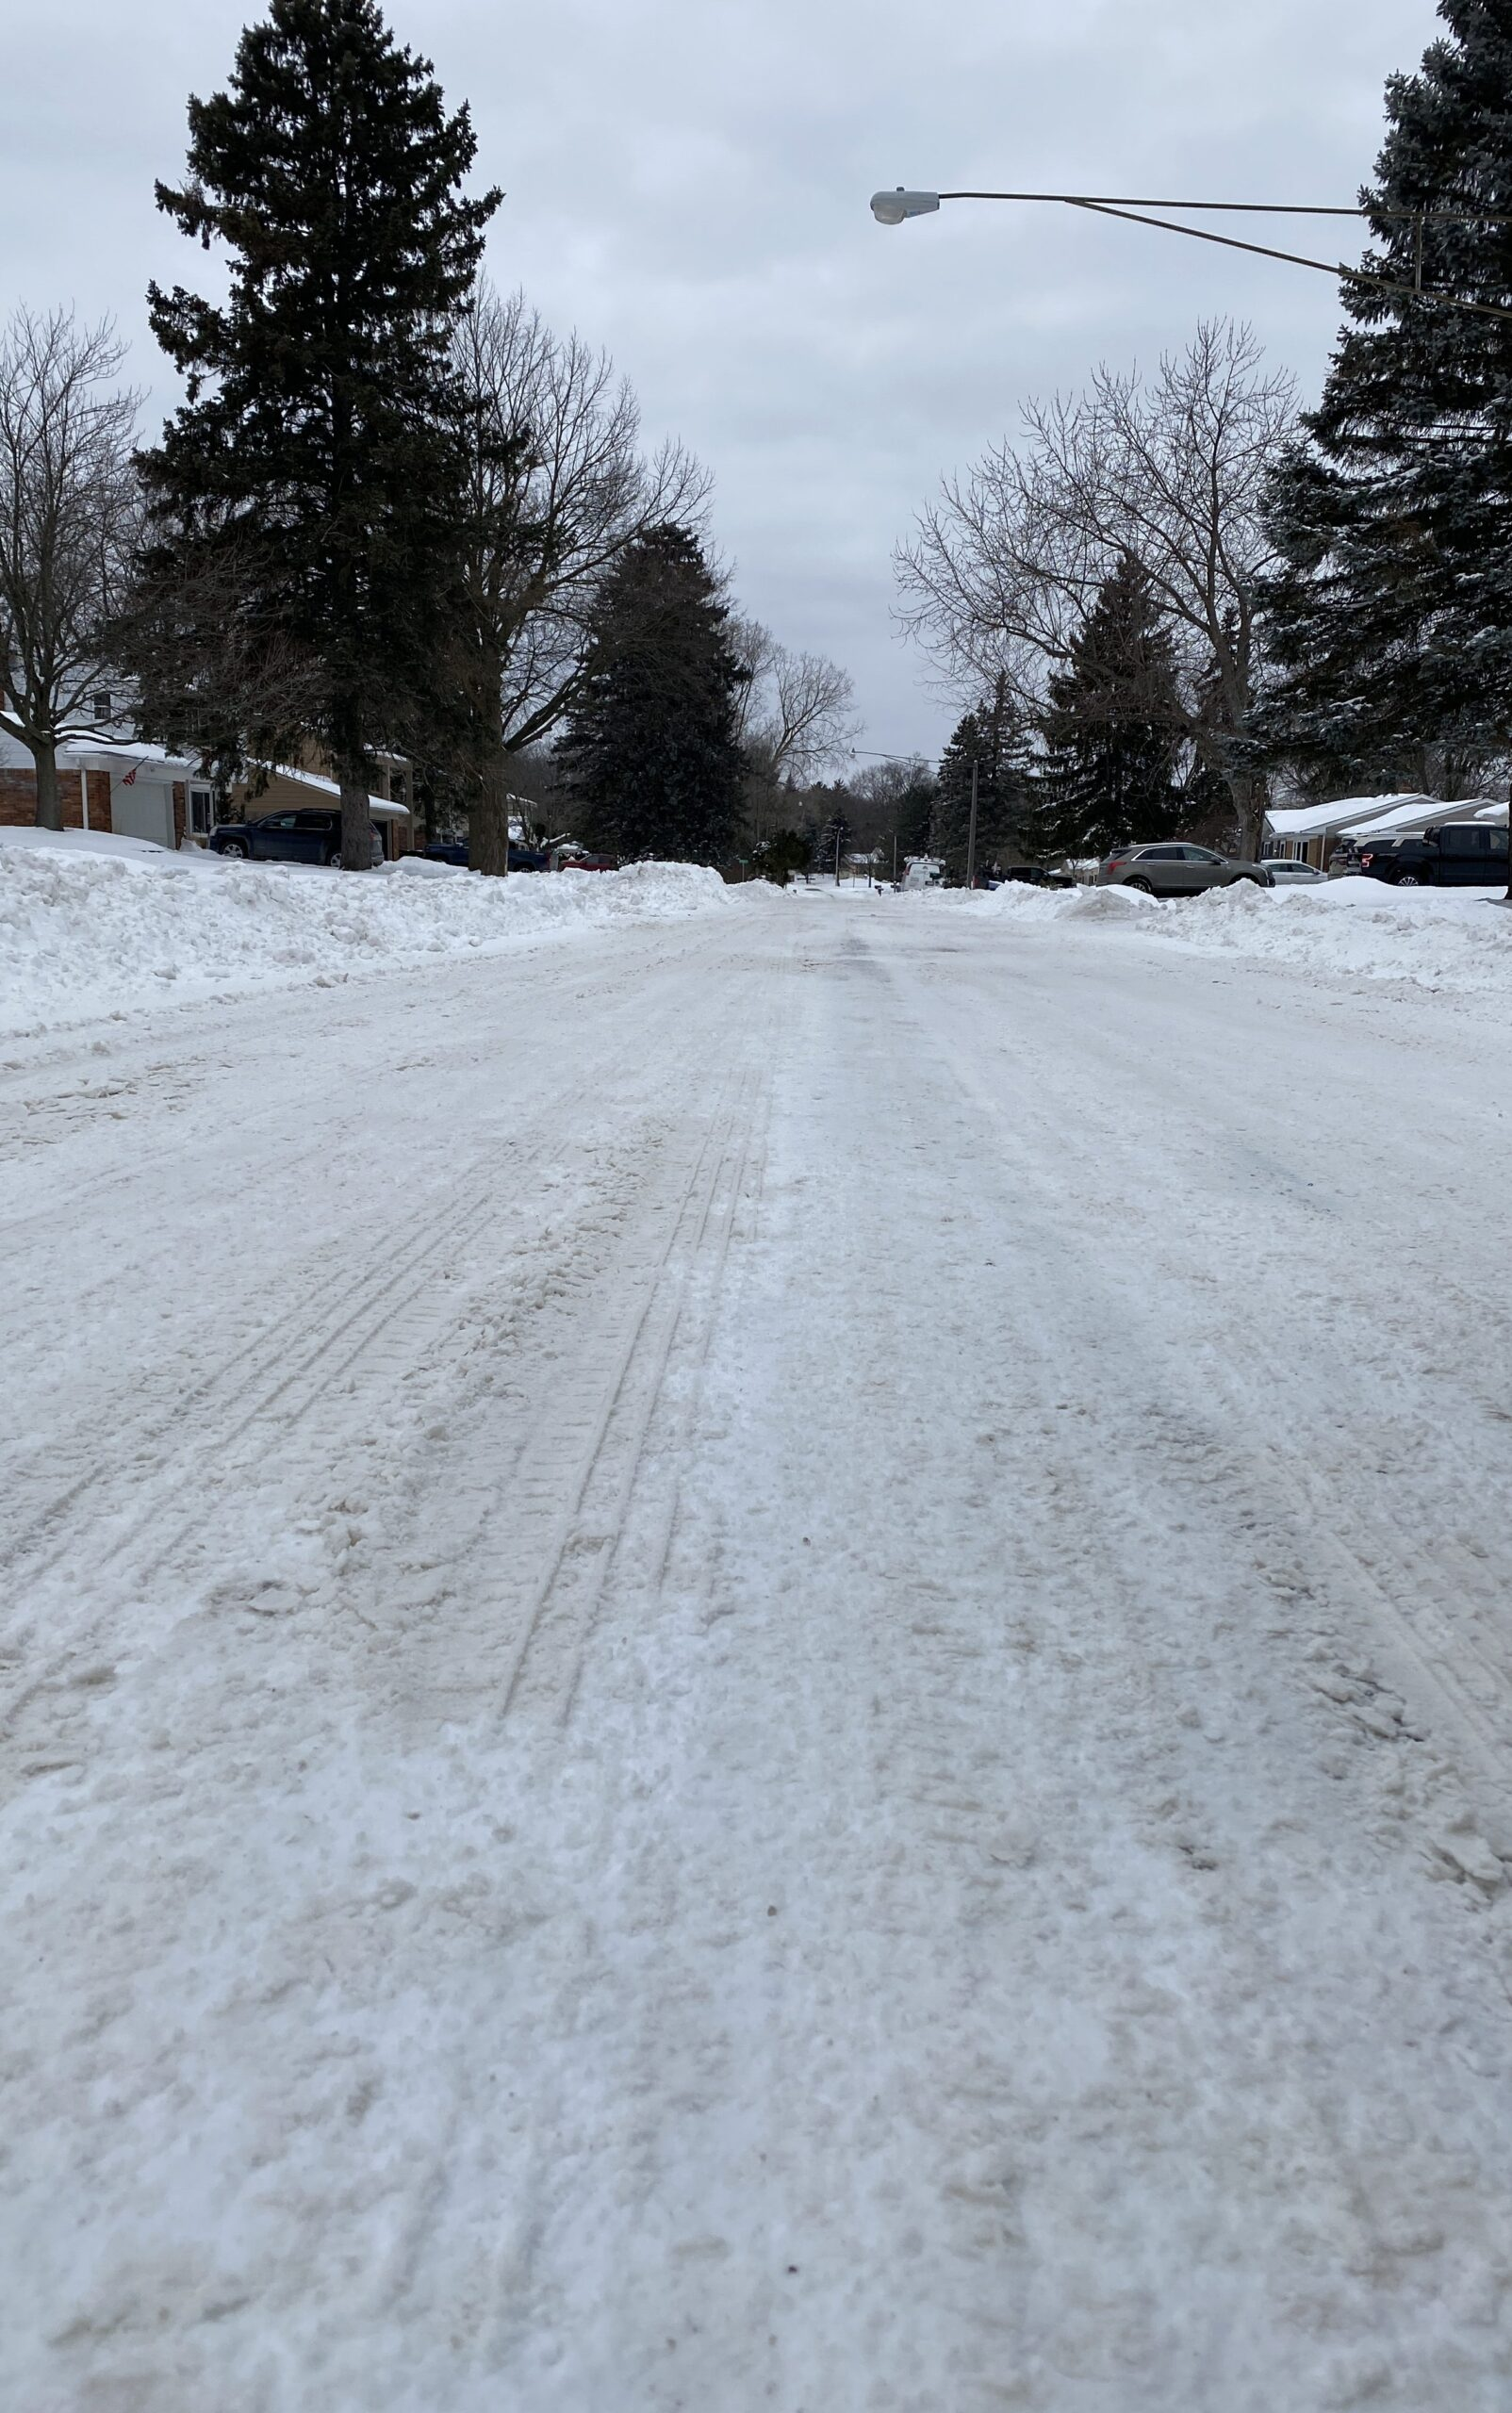 Hours after the snowstorm, Waterford back roads are covered in snow. RCOC worked hard during the snowstorm to get many roads plowed and cleared.